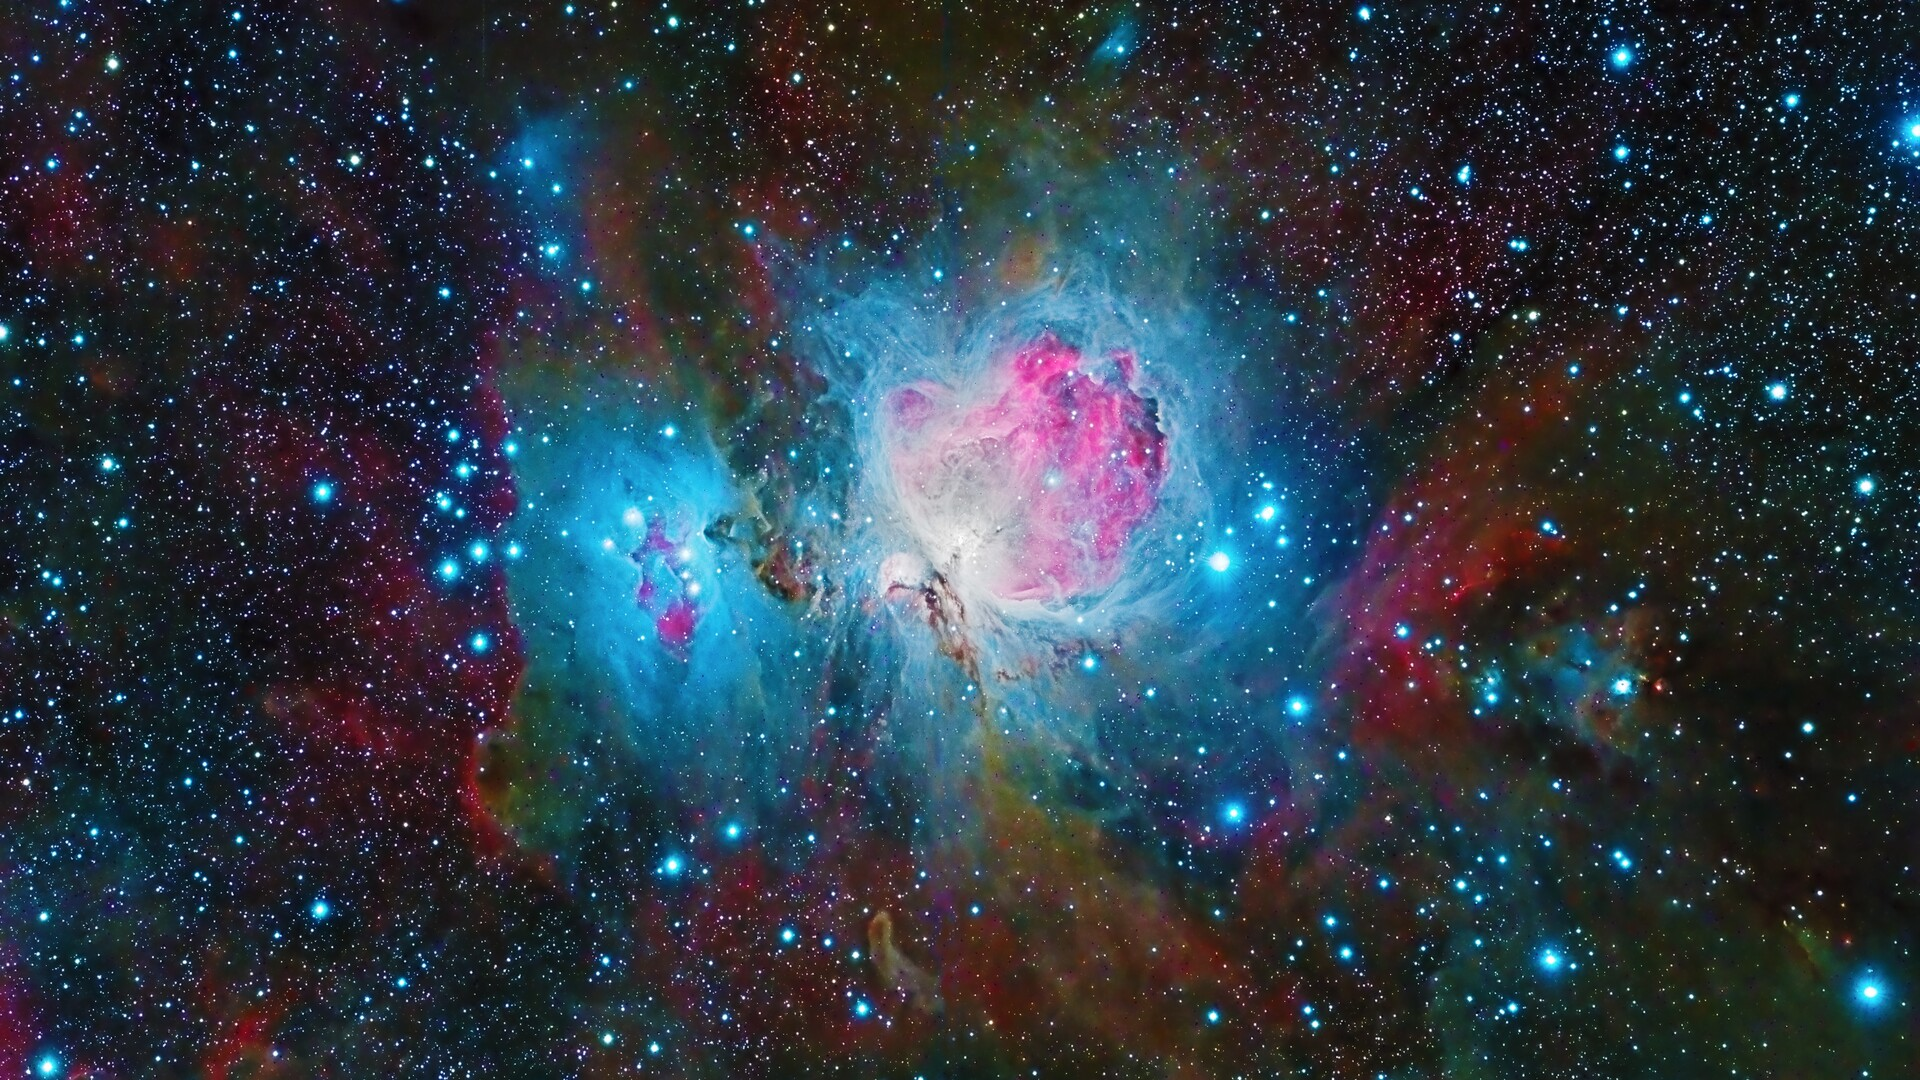 1920x1080 Nebula Space Galaxy Colorful 4k Laptop Full Hd 1080p Hd 4k Wallpapers Images Backgrounds Photos And Pictures